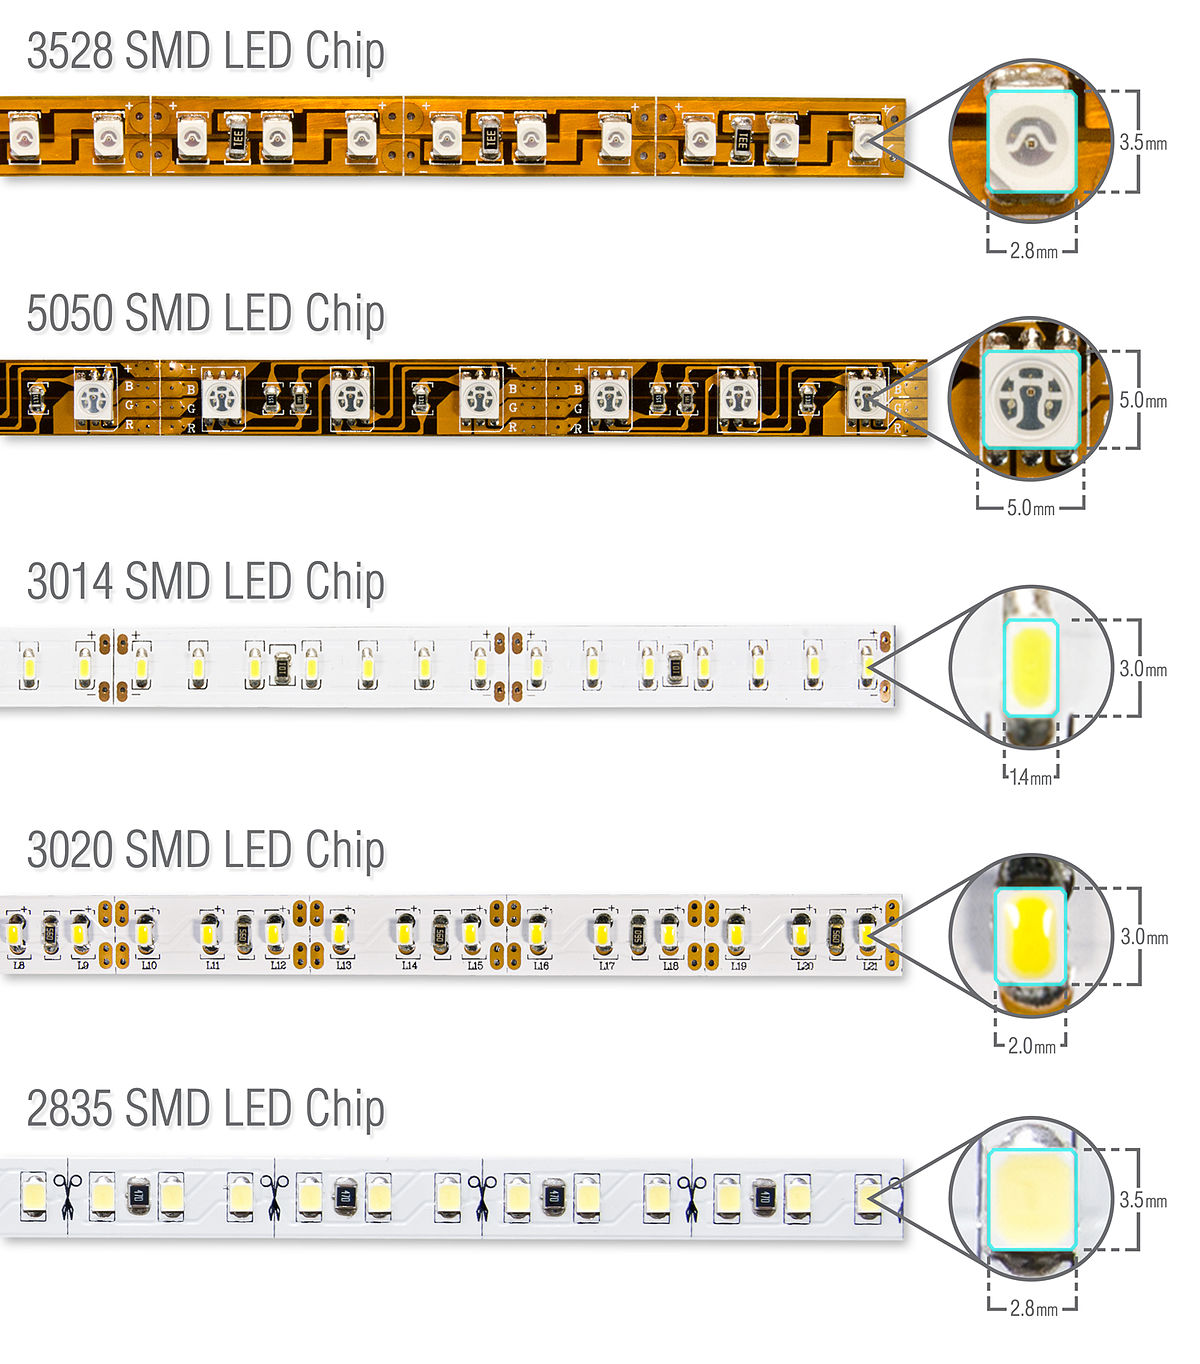 1200px SMD LED comparison 5050 2835 3528 3014 Flexfireleds led strip light wikipedia 5050 RGB LED Strip at gsmx.co